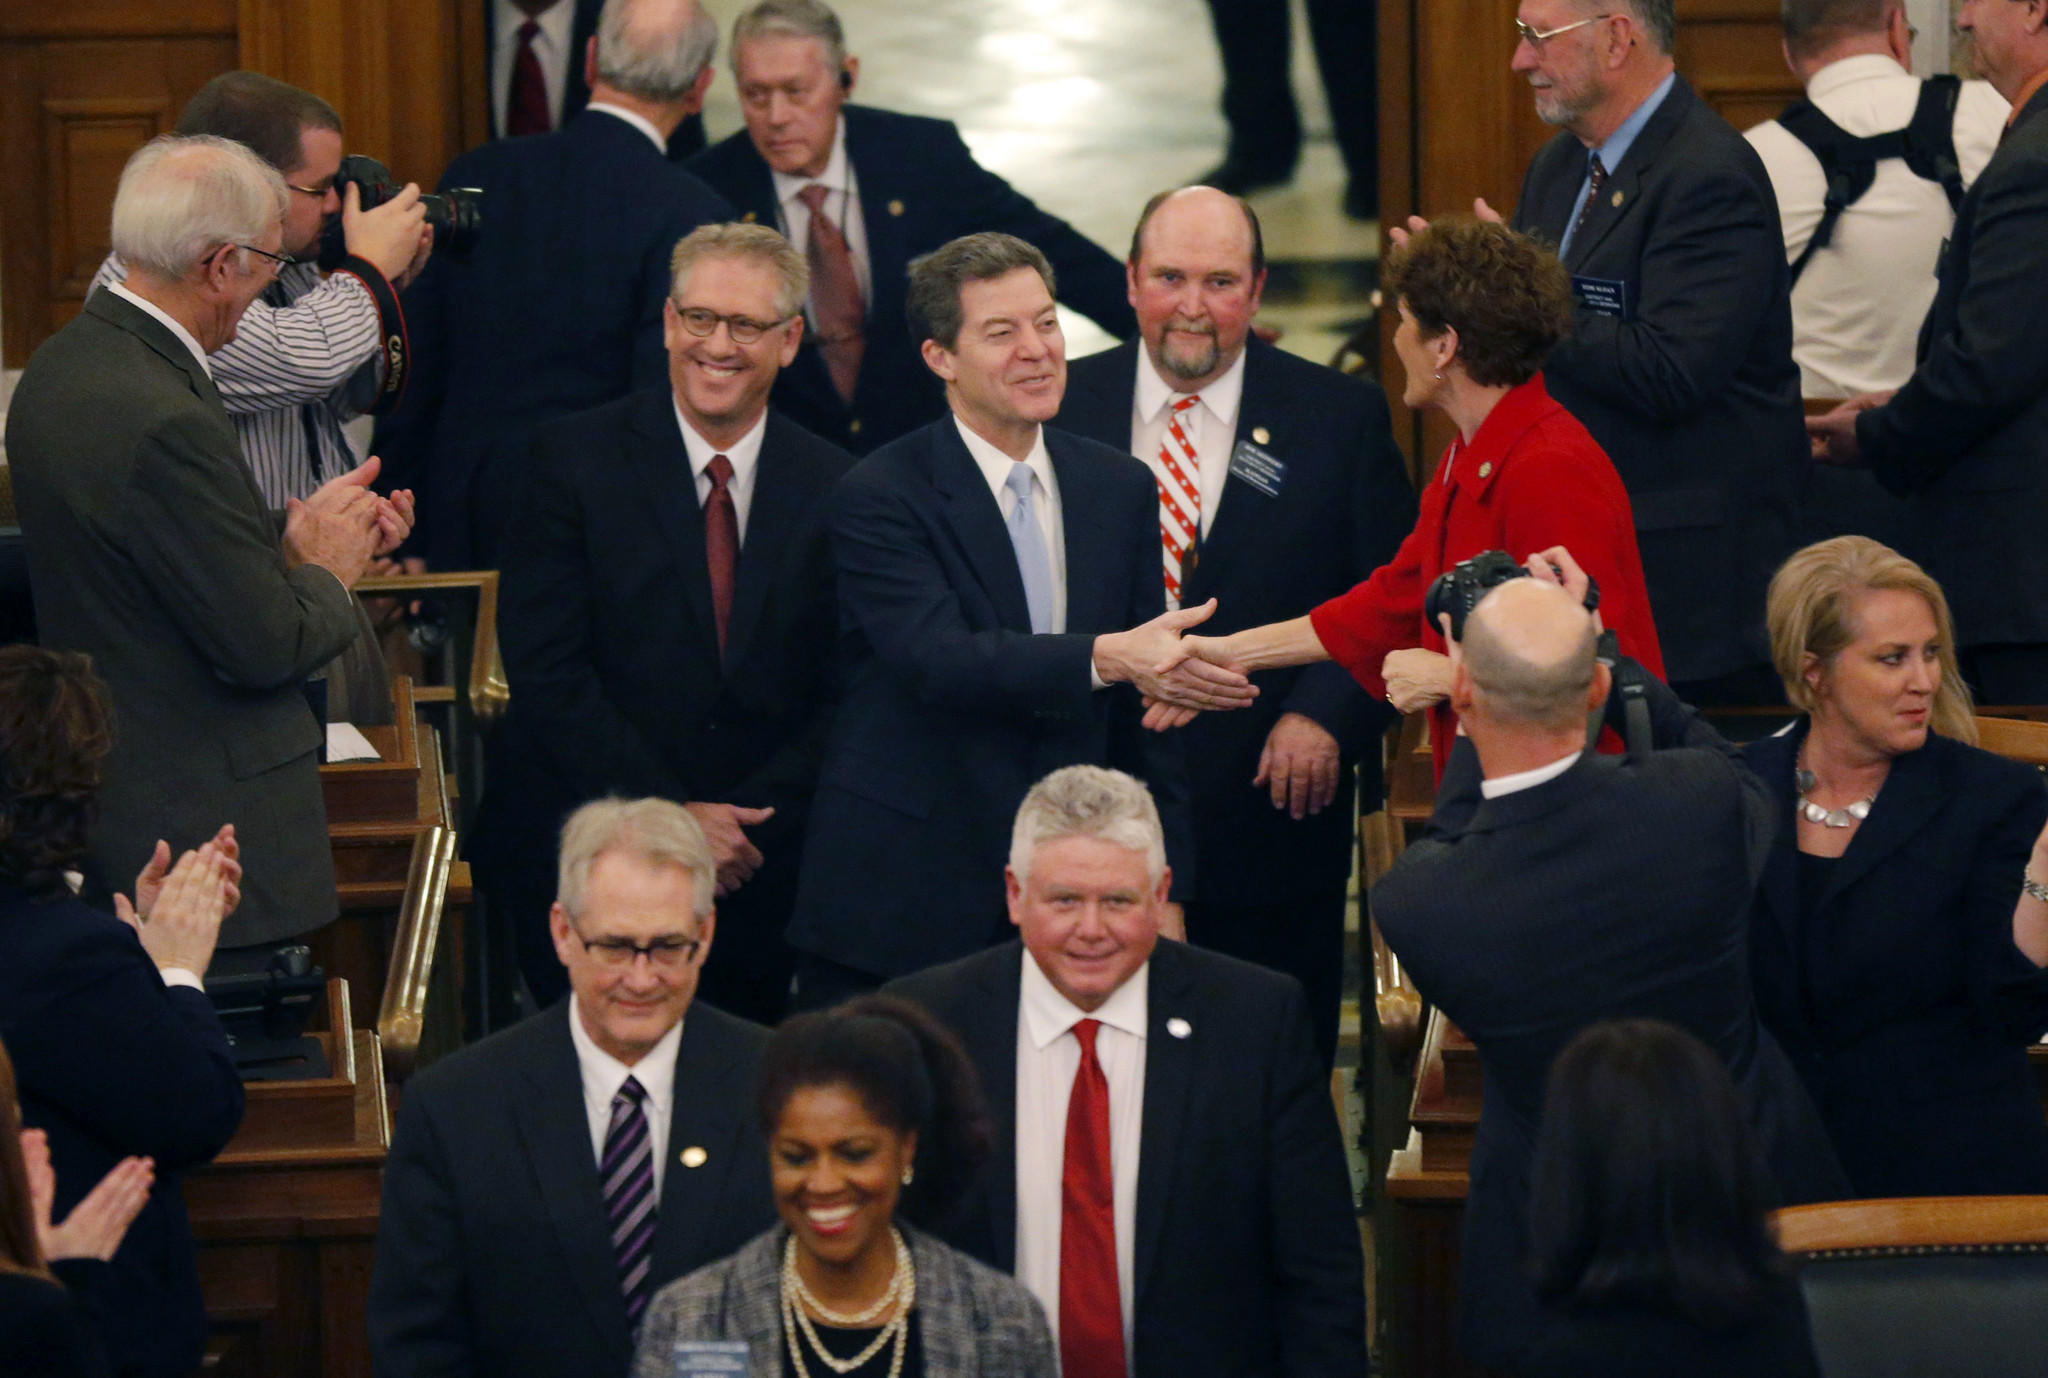 Kansas Gov. Sam Brownback greets representatives before his State of the State speech to an annual joint session of the House and Senate at the Statehouse in Topeka, Kan. Brownback told Kansas legislators that the tax cuts he championed will spur economic growth.